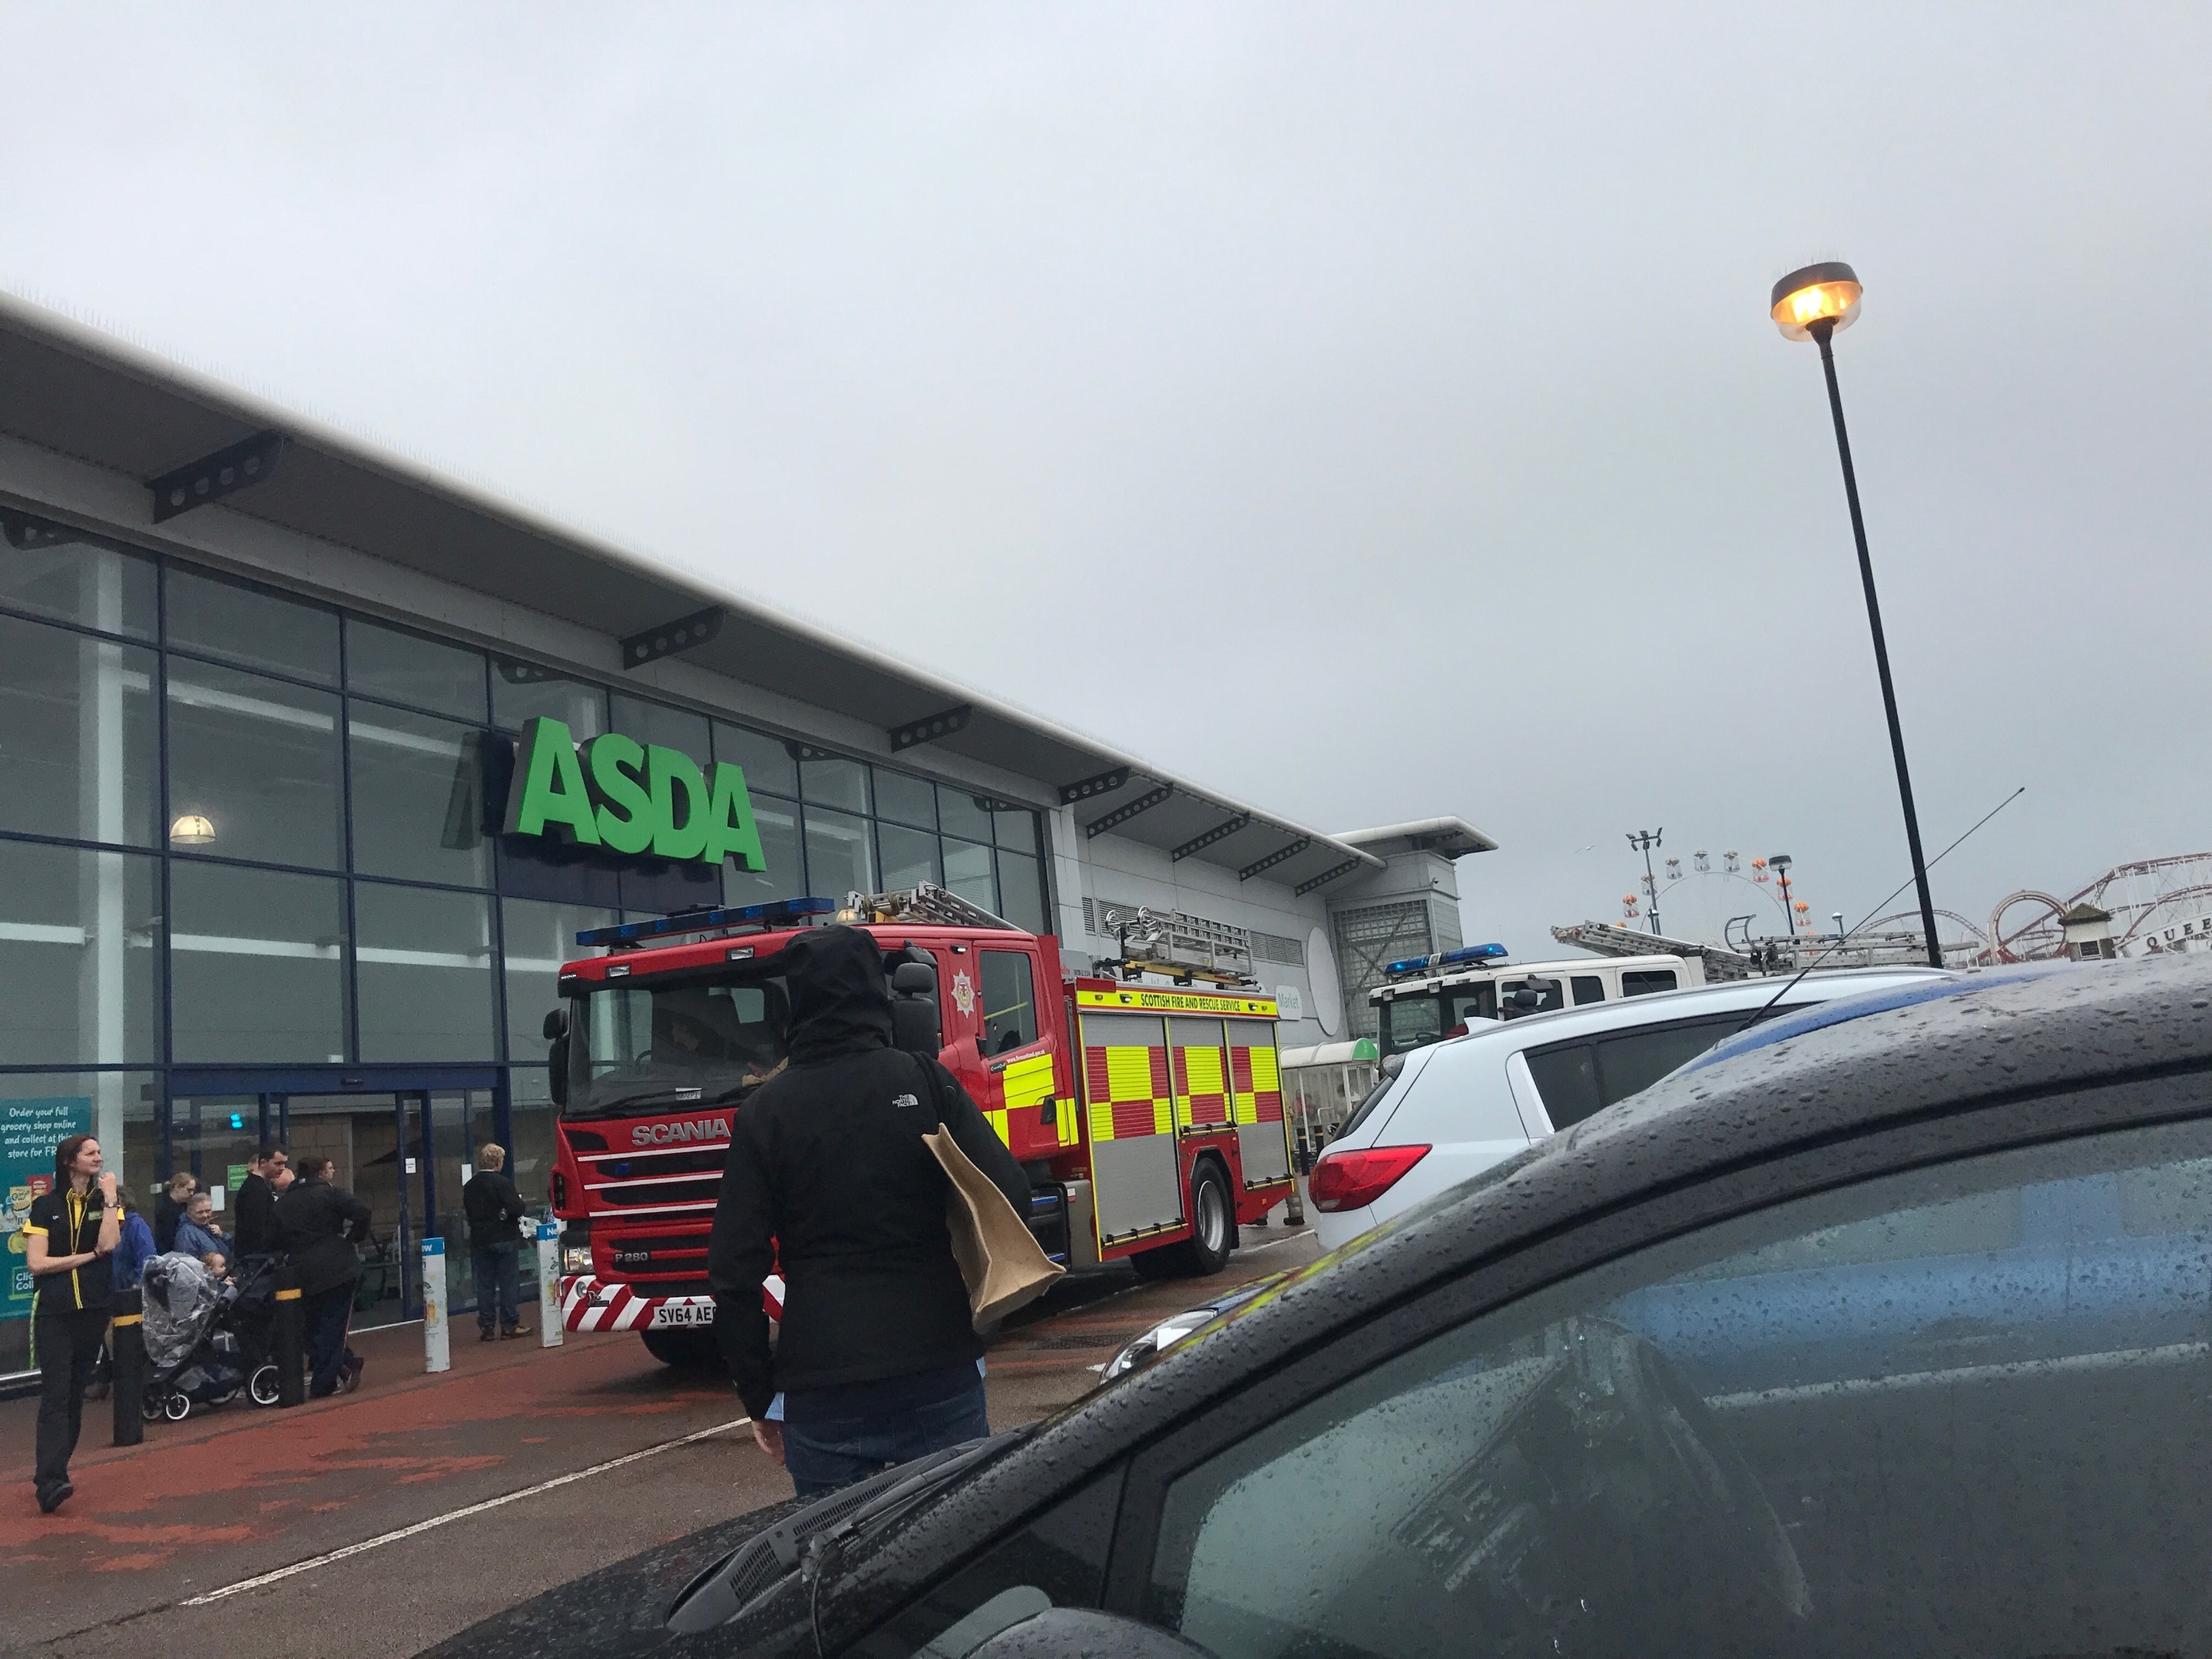 Asda at the Beach Retail Park in Aberdeen has been evacuated following a fire alarm.